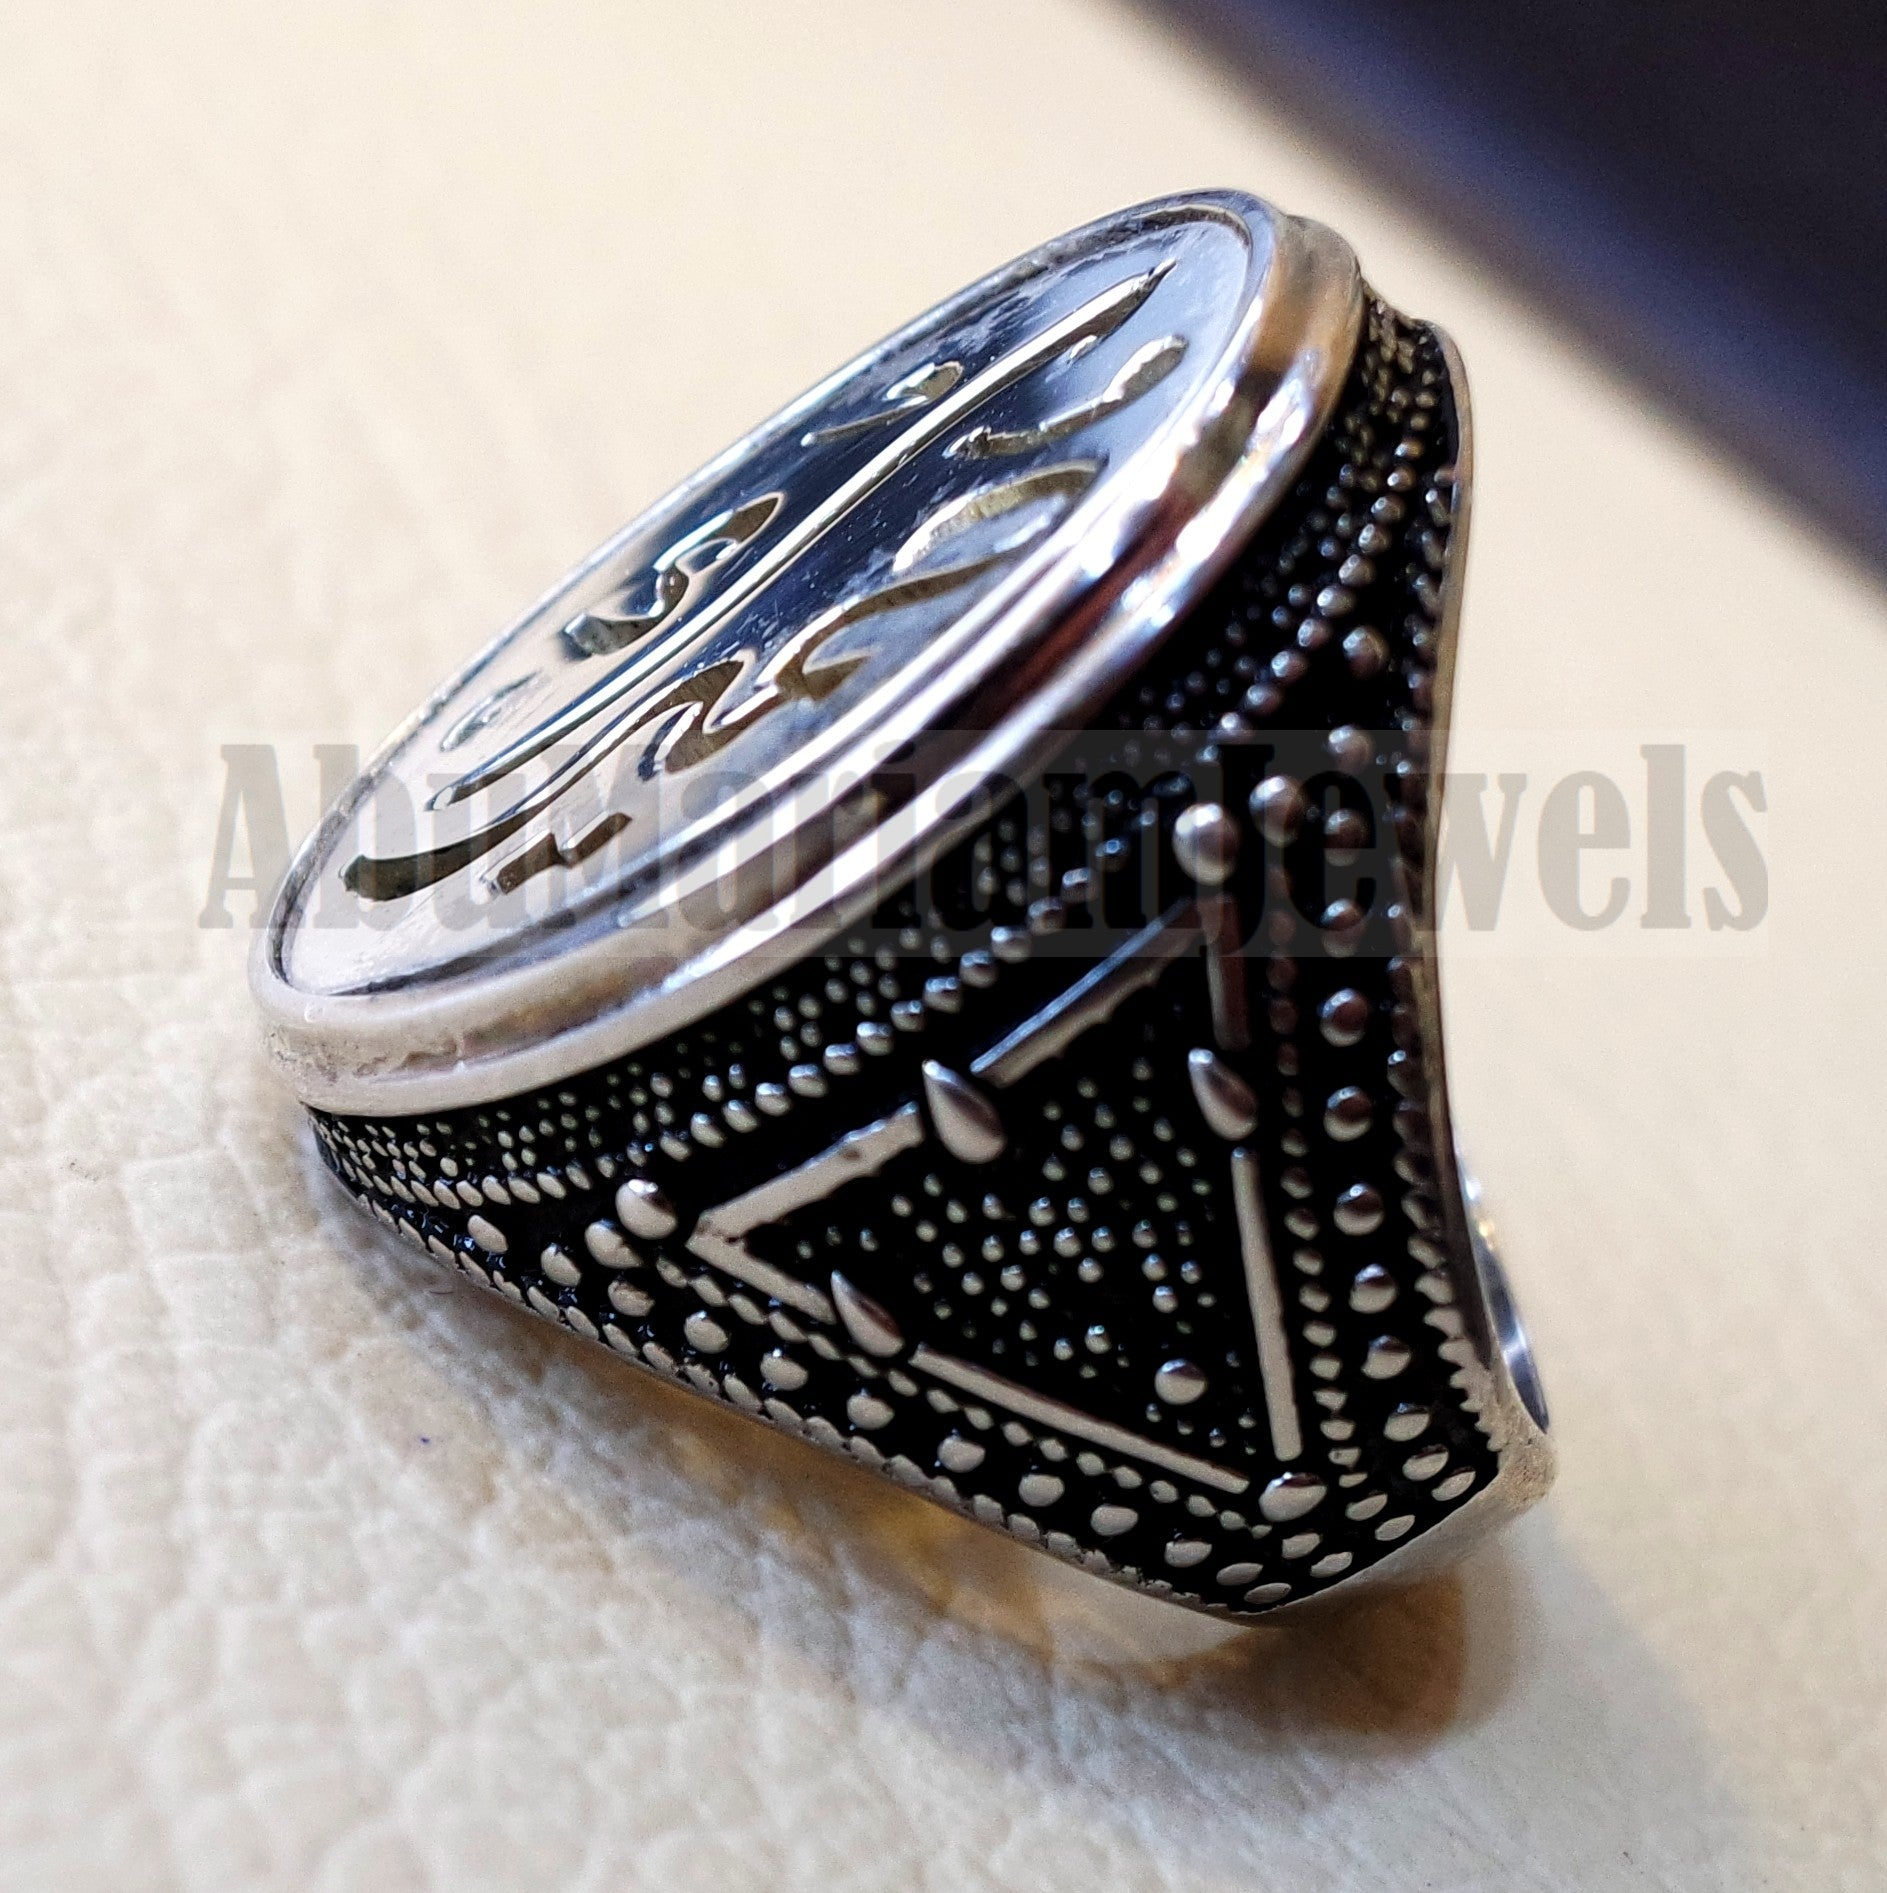 Customized Arabic calligraphy names handmade ring personalized antique jewelry style sterling silver 925 any size TSN1010 خاتم اسم تفصيل